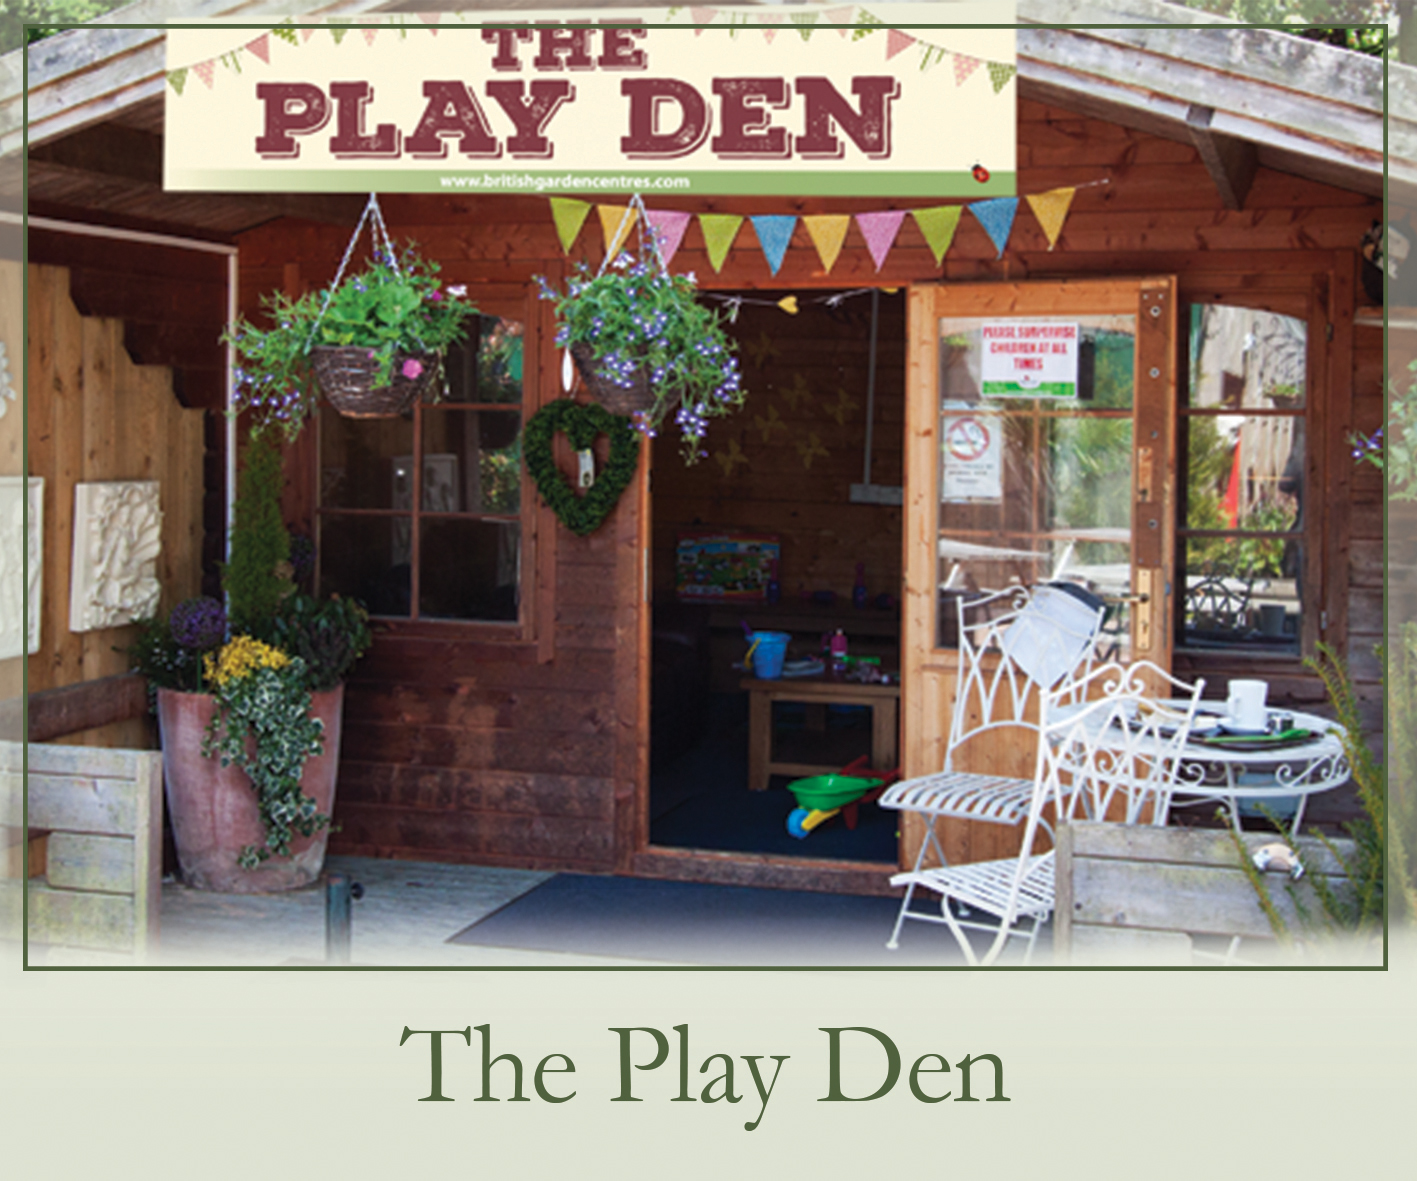 The Play Den